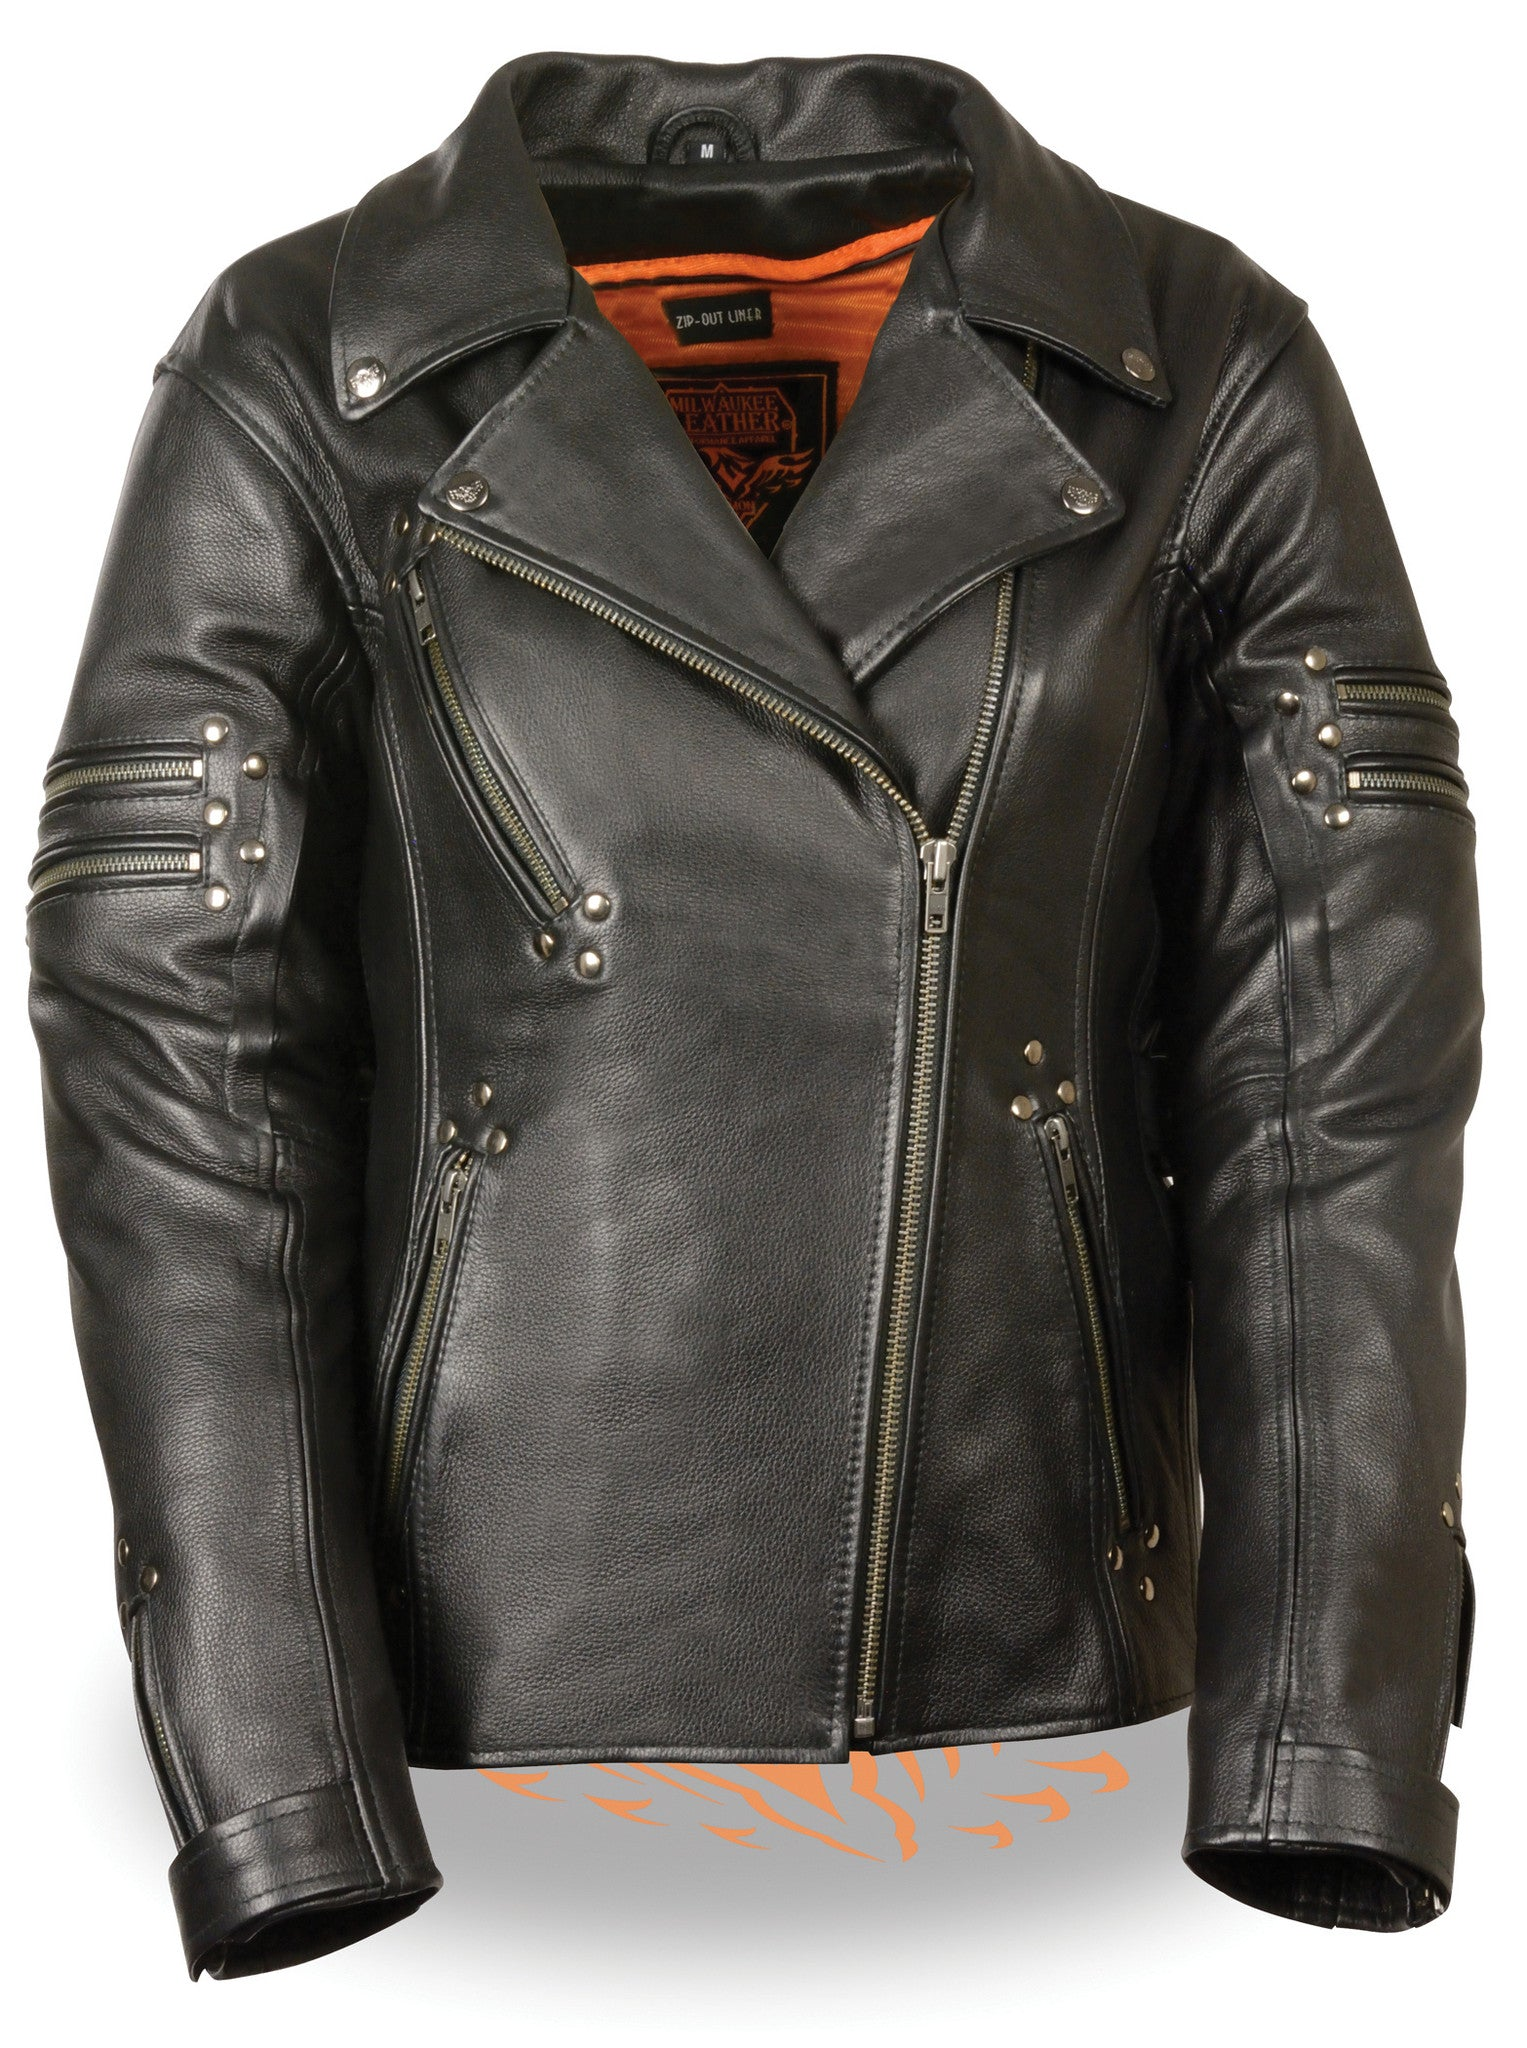 WOMEN'S FITTED LEATHER JACKET W/ RIVET DETAILING